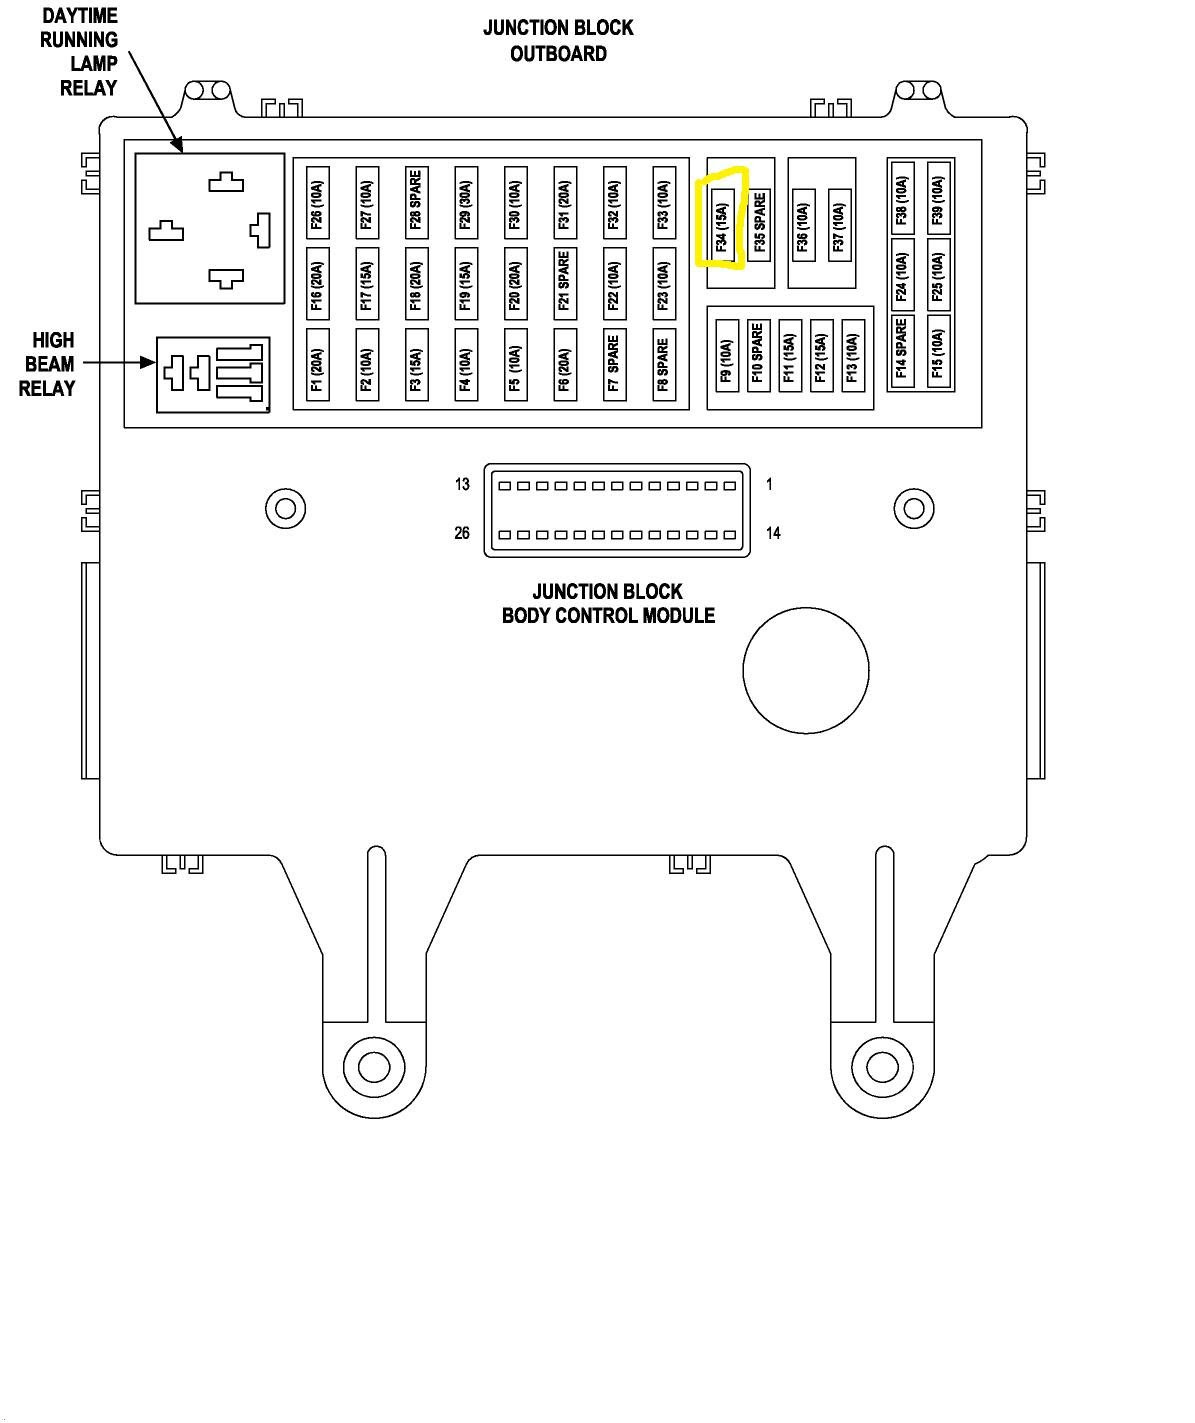 2012 Jeep Liberty Wiring Diagram from lh6.googleusercontent.com